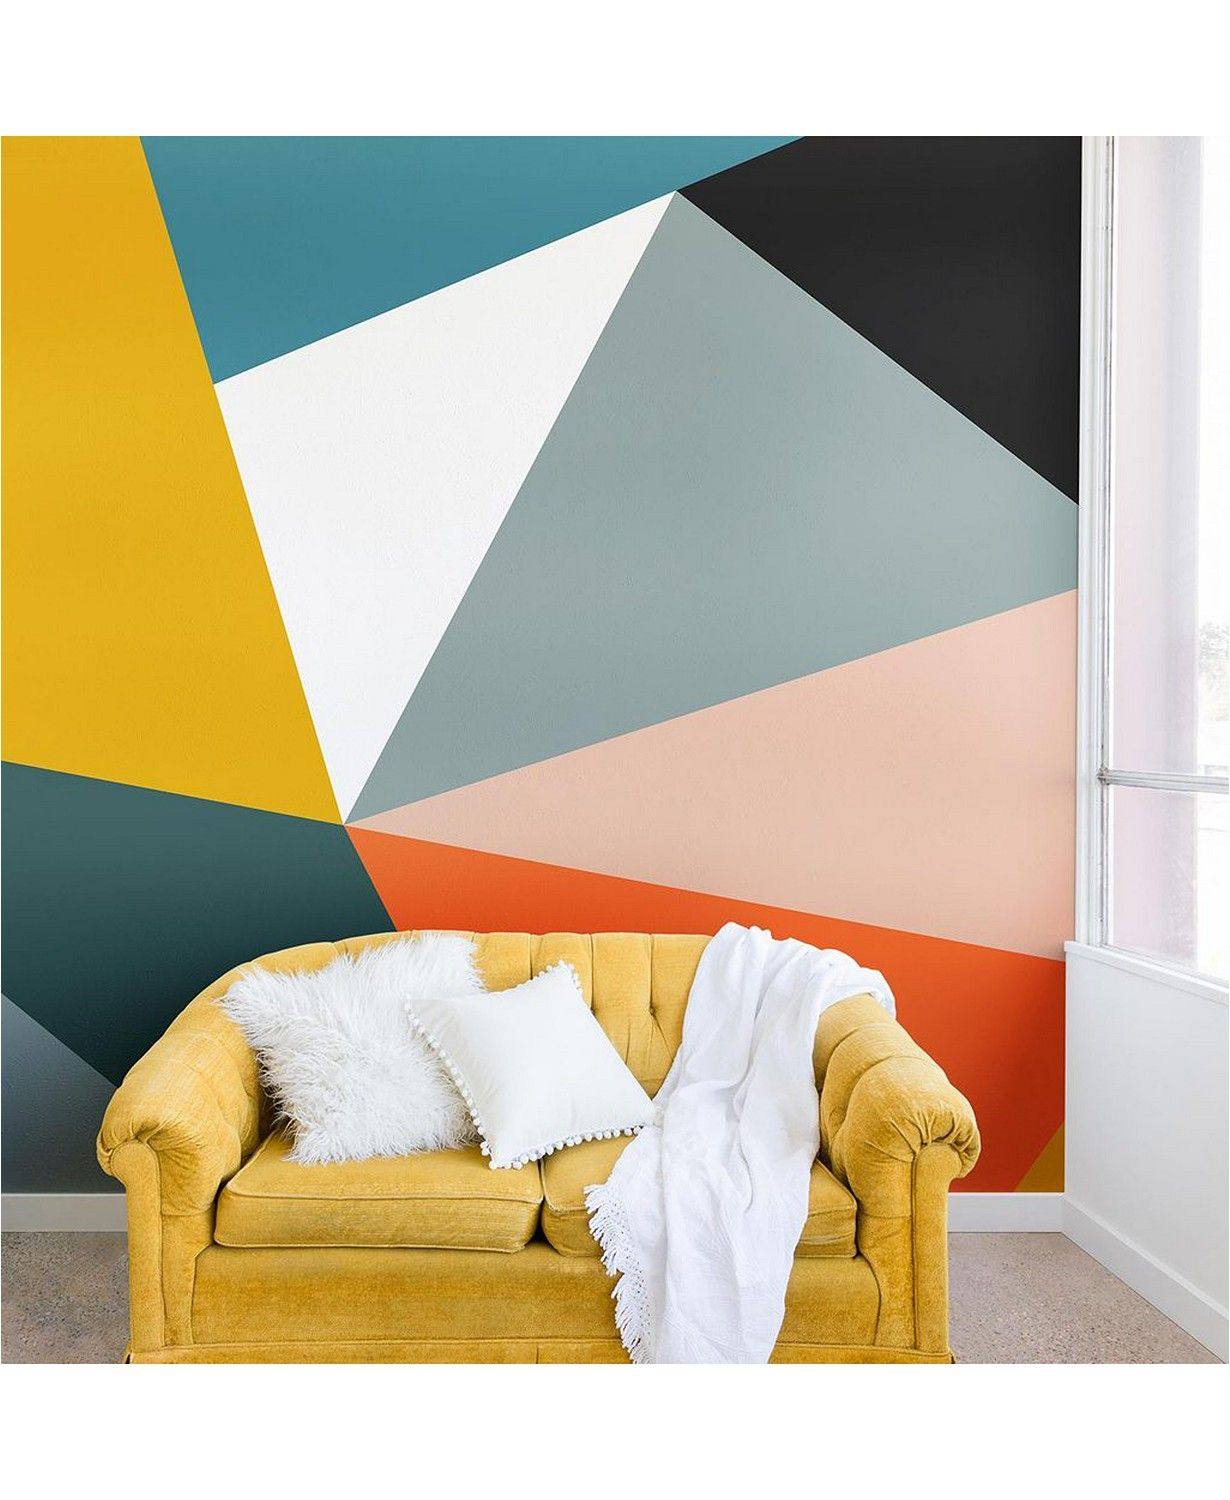 Deny Designs The Old Art Studio Modern Geometric No 33 8 X8 Wall Mural Reviews Wallpaper Home Decor Macy S In 2020 Geometric Wall Paint Wall Murals Creative Walls